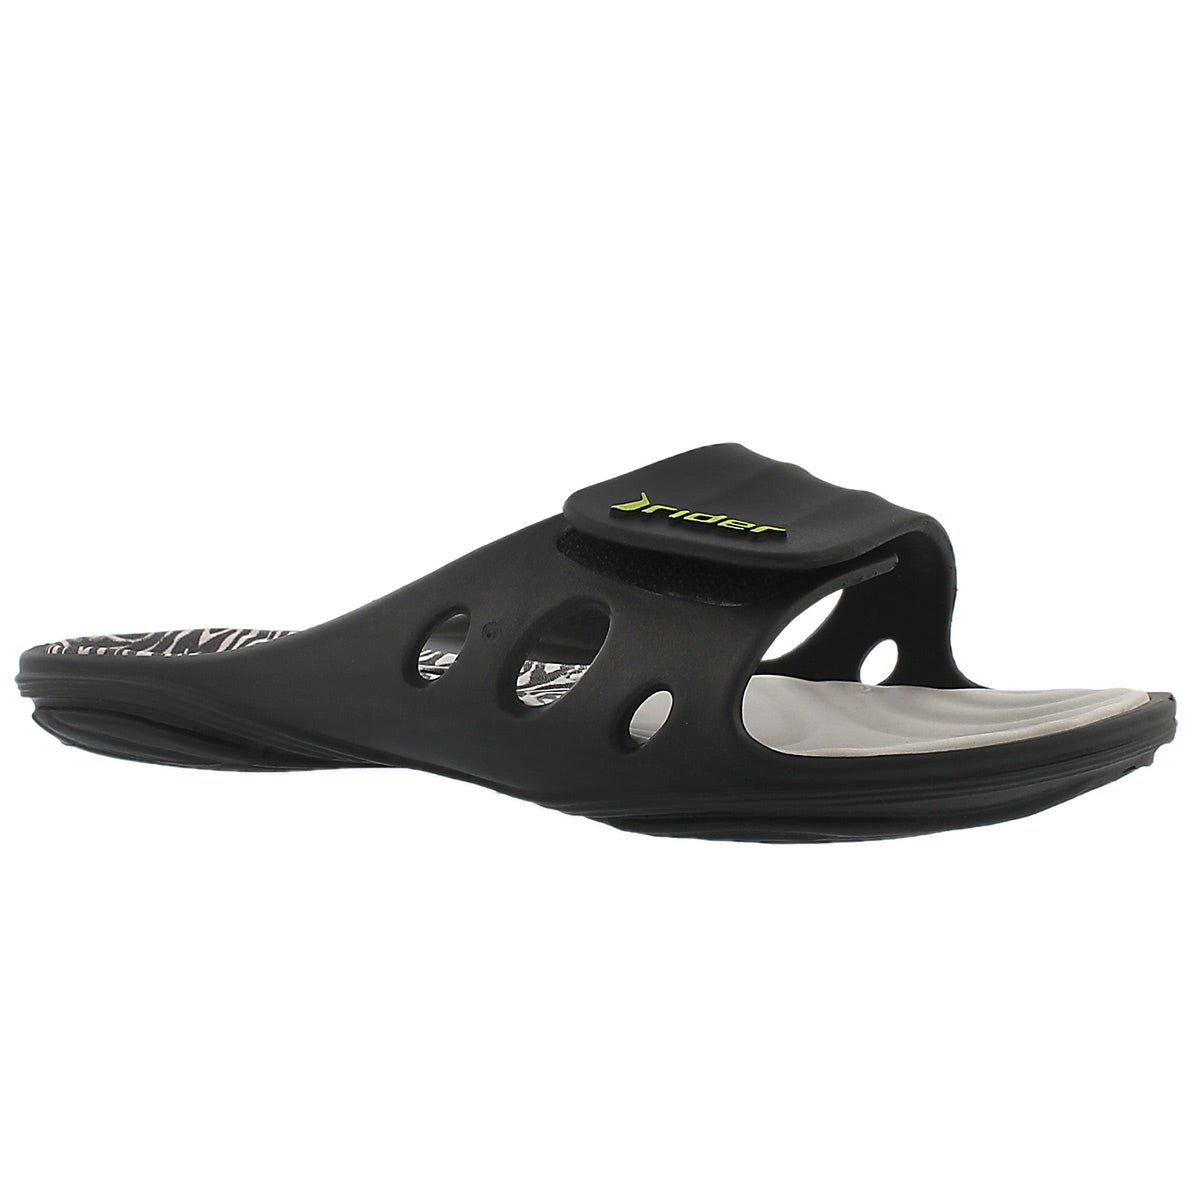 Lds Key VIII grey slide sport sandal